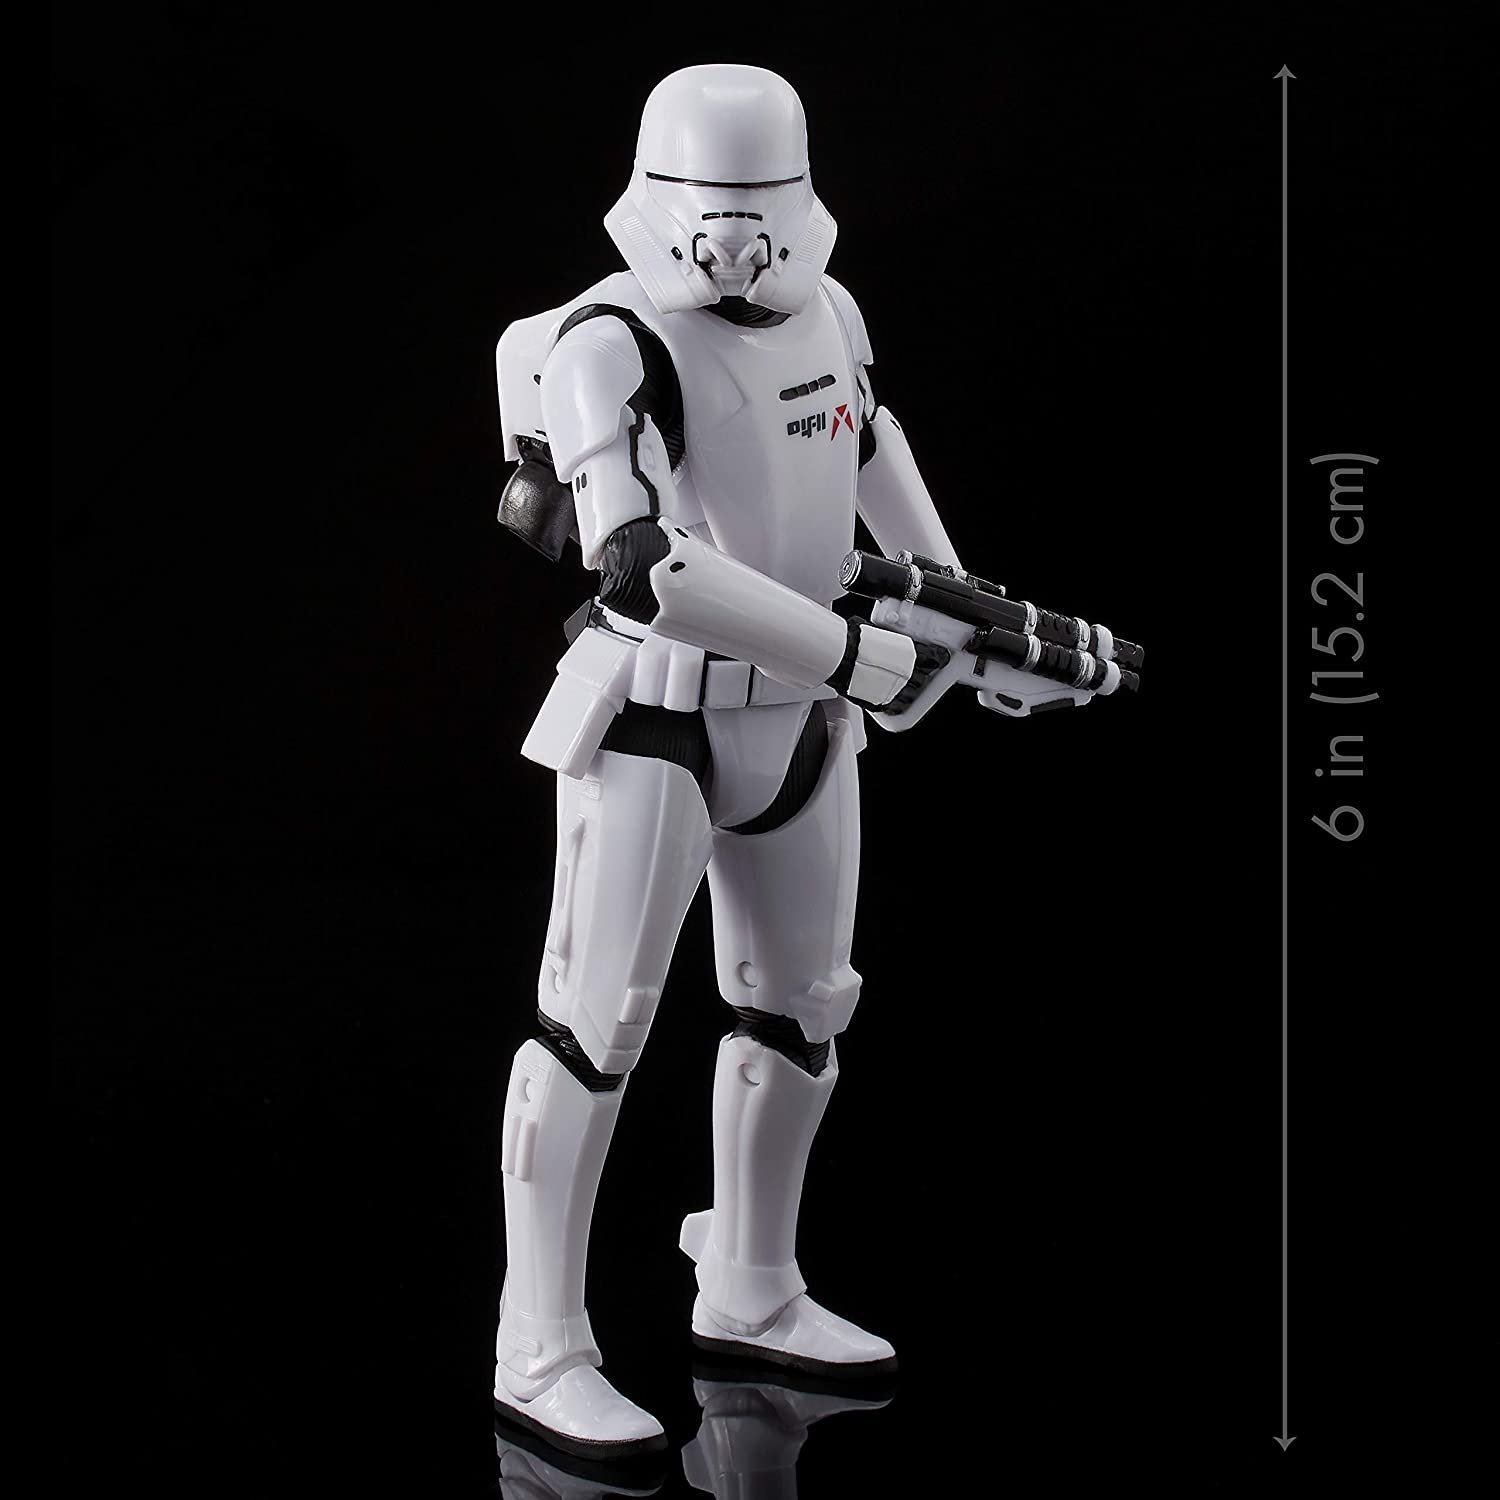 "Star Wars The Black Series First Order Jet Trooper Toy 6"" Scale The Rise of Skywalker Collectible Figure, Kids Ages 4 & Up"